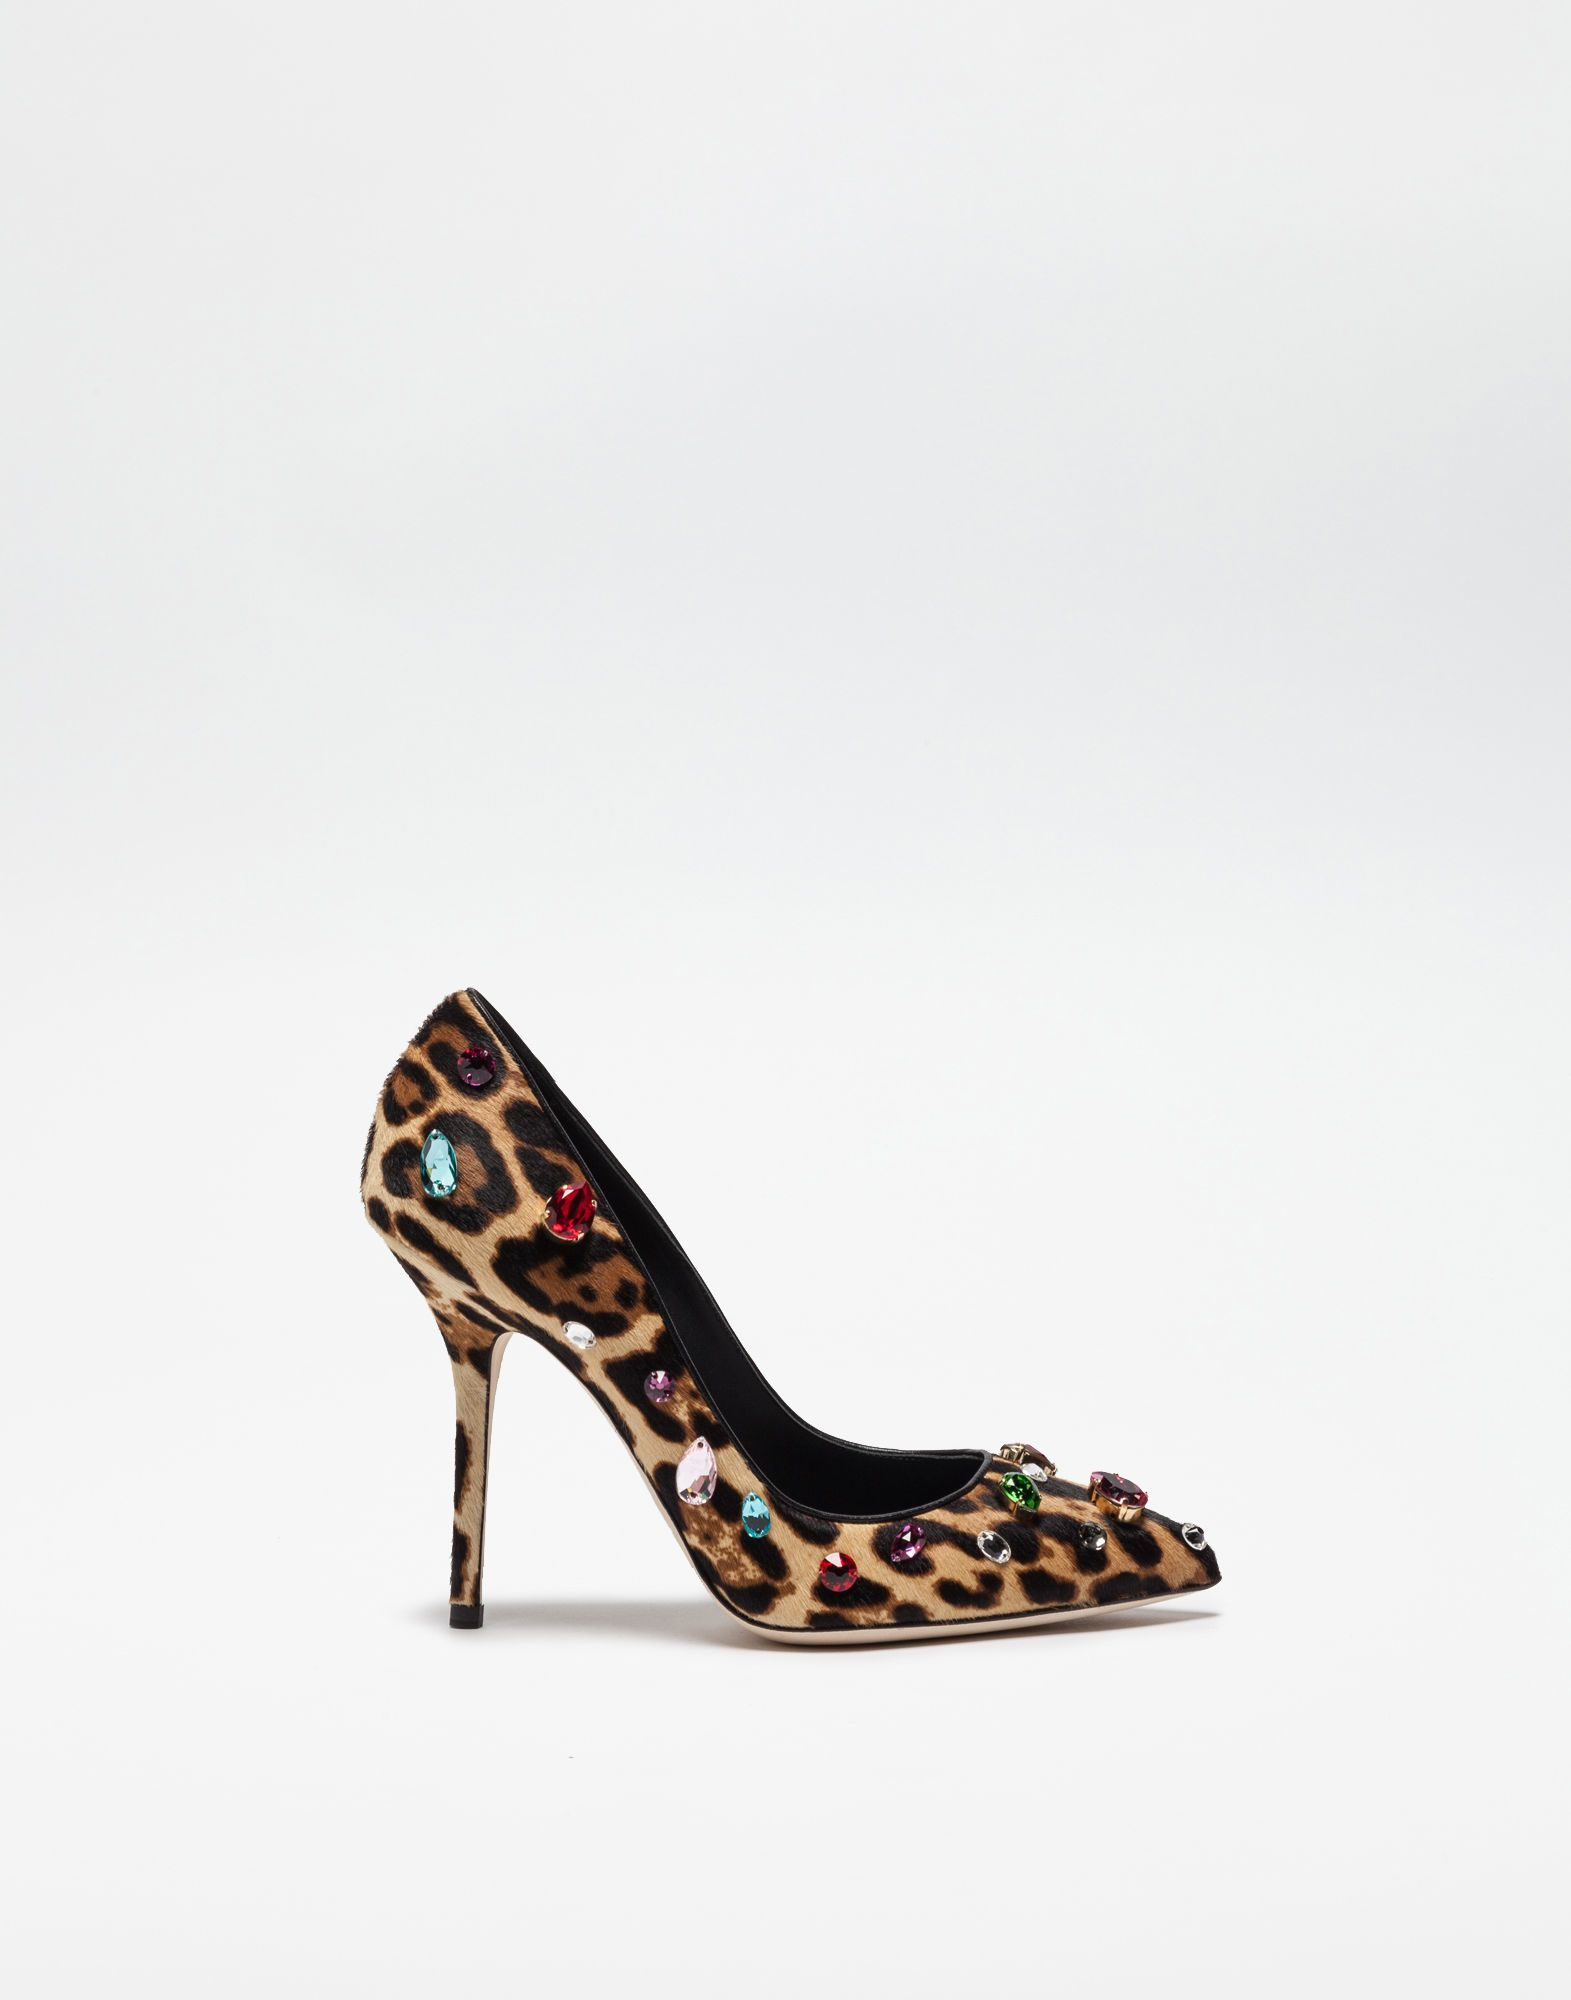 Pony Leo Decollete With Jewel Applications Dolce And Gabbana High Fashion Accessories Heels